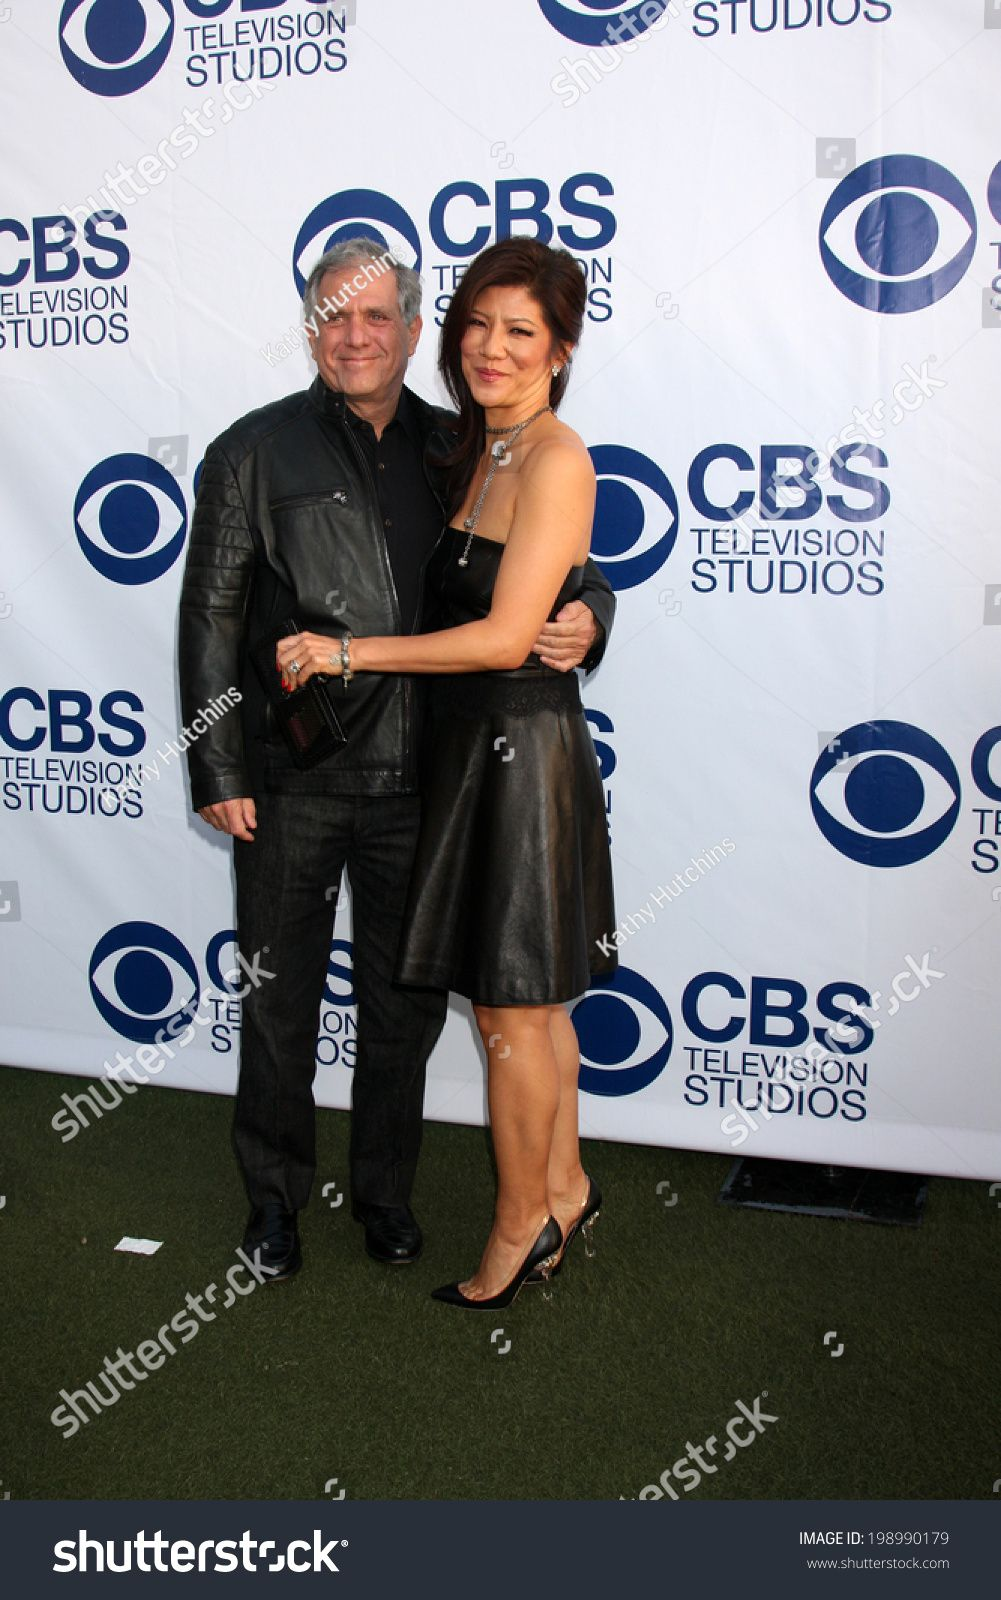 LOS ANGELES - MAY 19: Leslie Moonves, Julie Chen at the CBS Summer Soiree at the London Hotel on May 19, 201 #Ad , #Aff, #Julie#Moonves#CBS#Chen